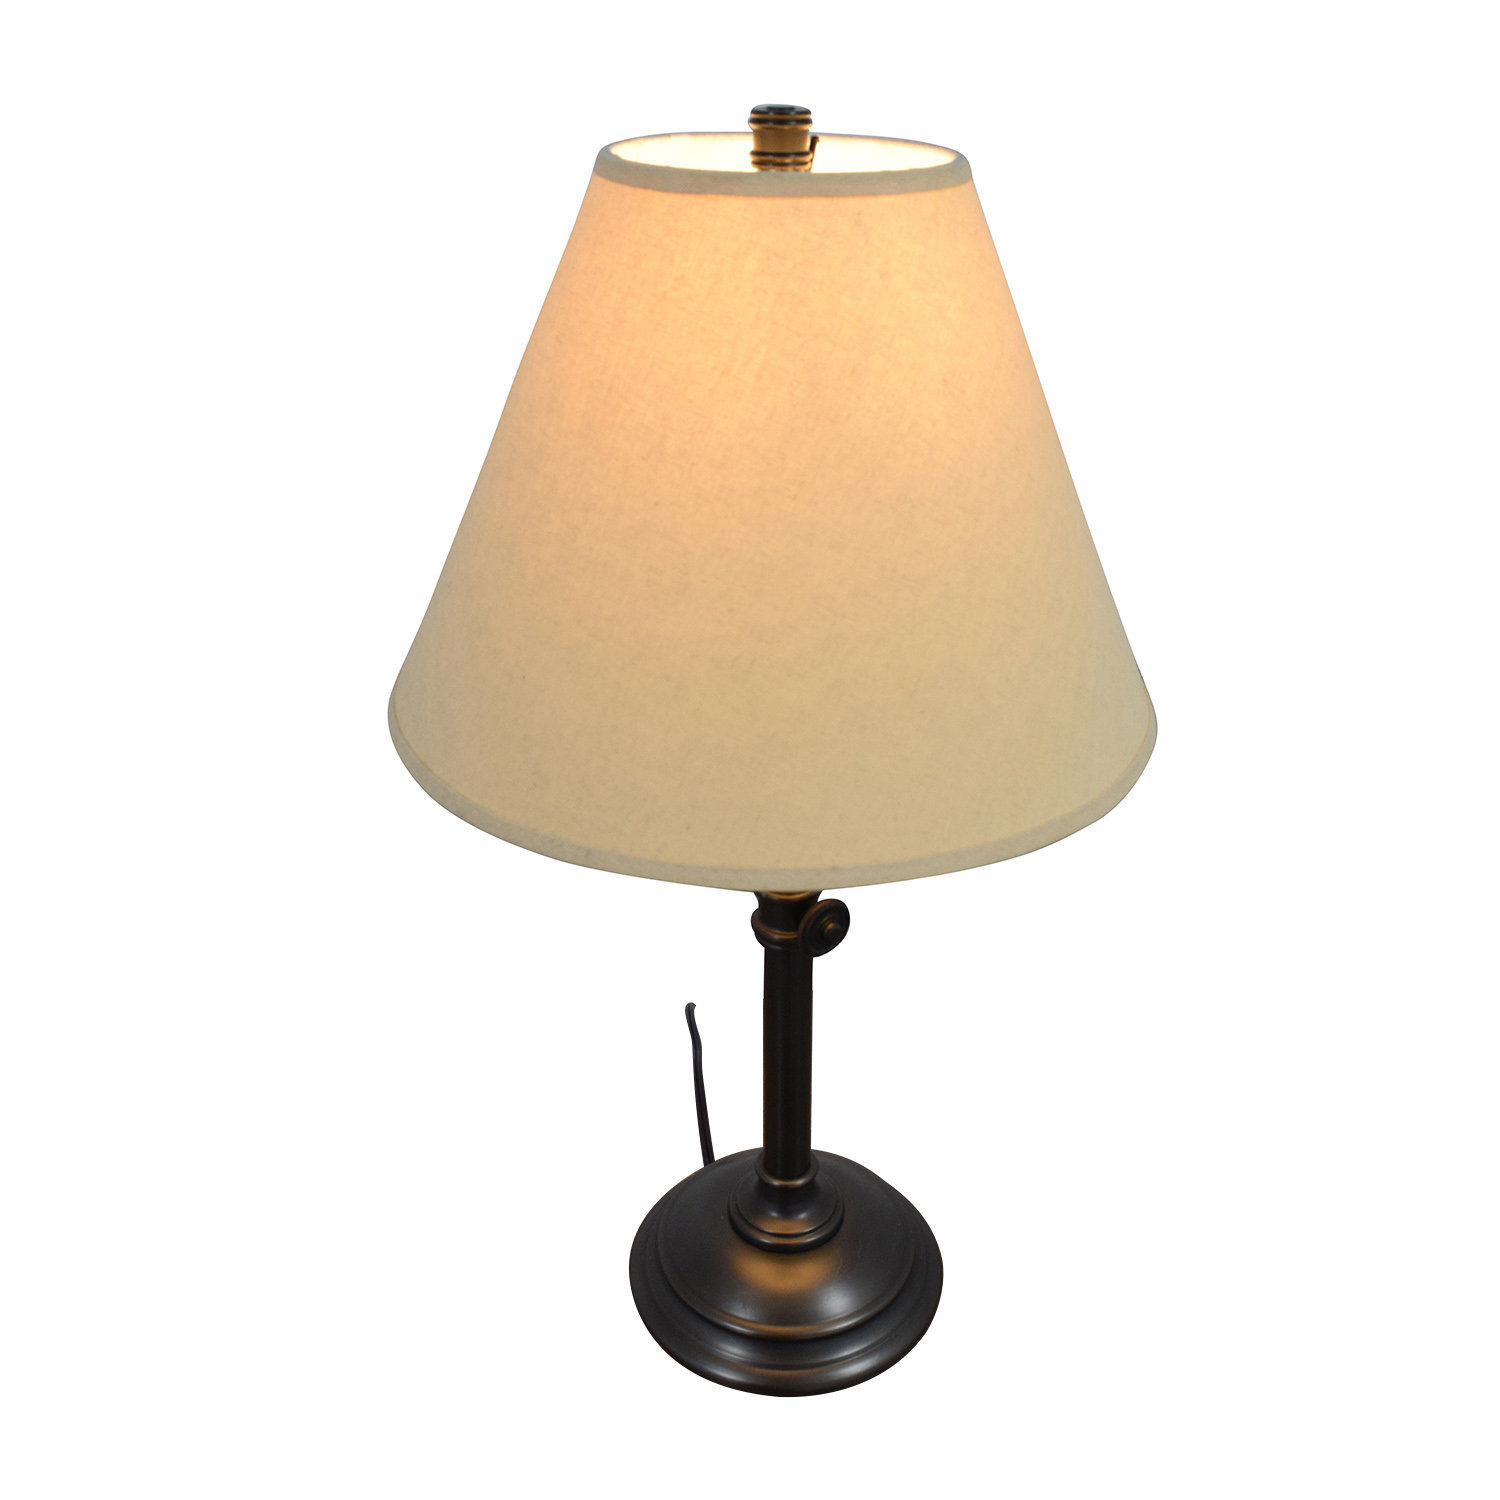 Pottery Barn Pottery Barn Desk Lamp discount